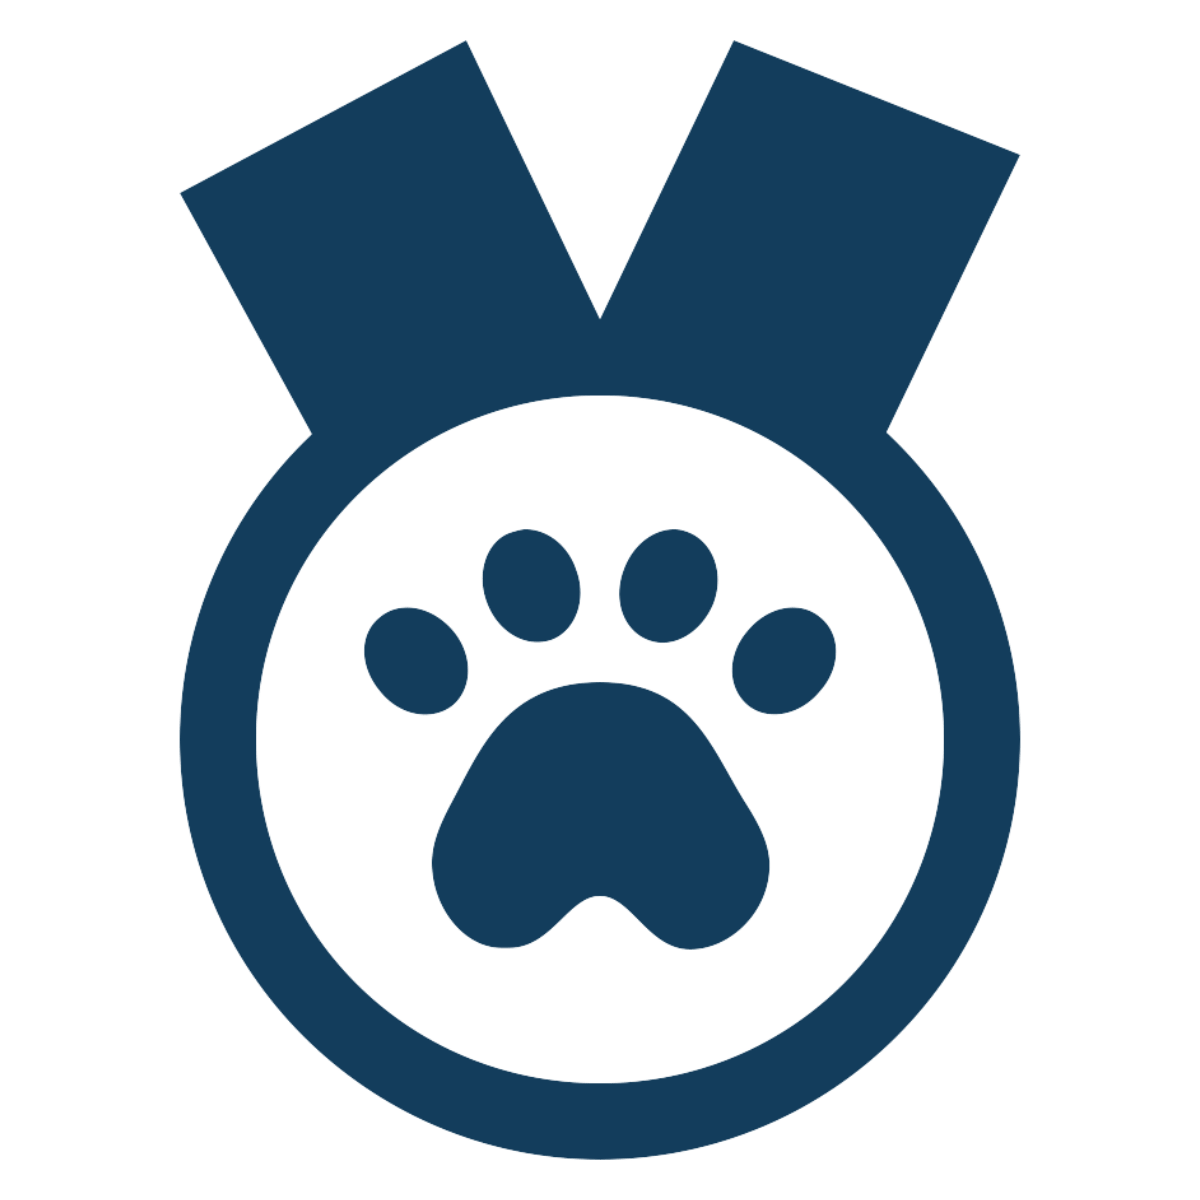 2018 Pet Care Innovation Prize Winner, #1 Rated